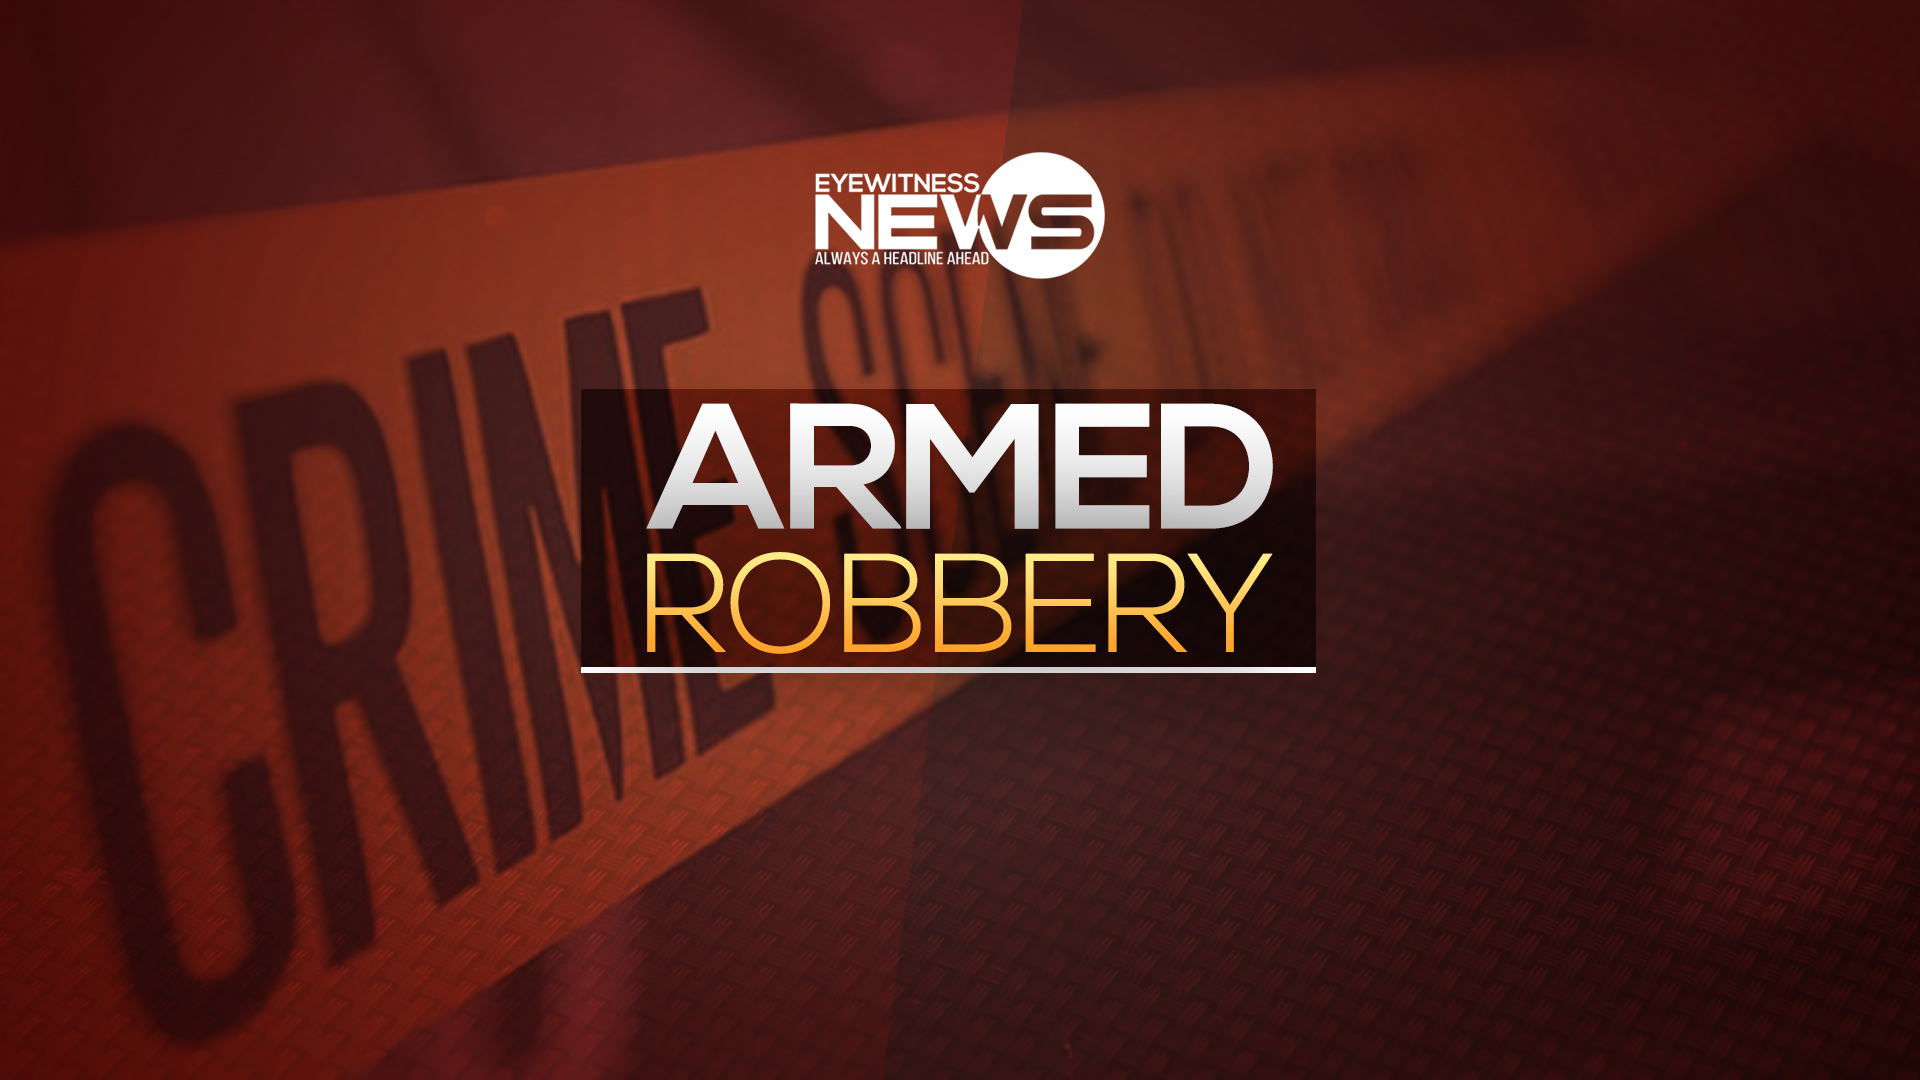 Police investigate armed robbery, illegal firearm recovered